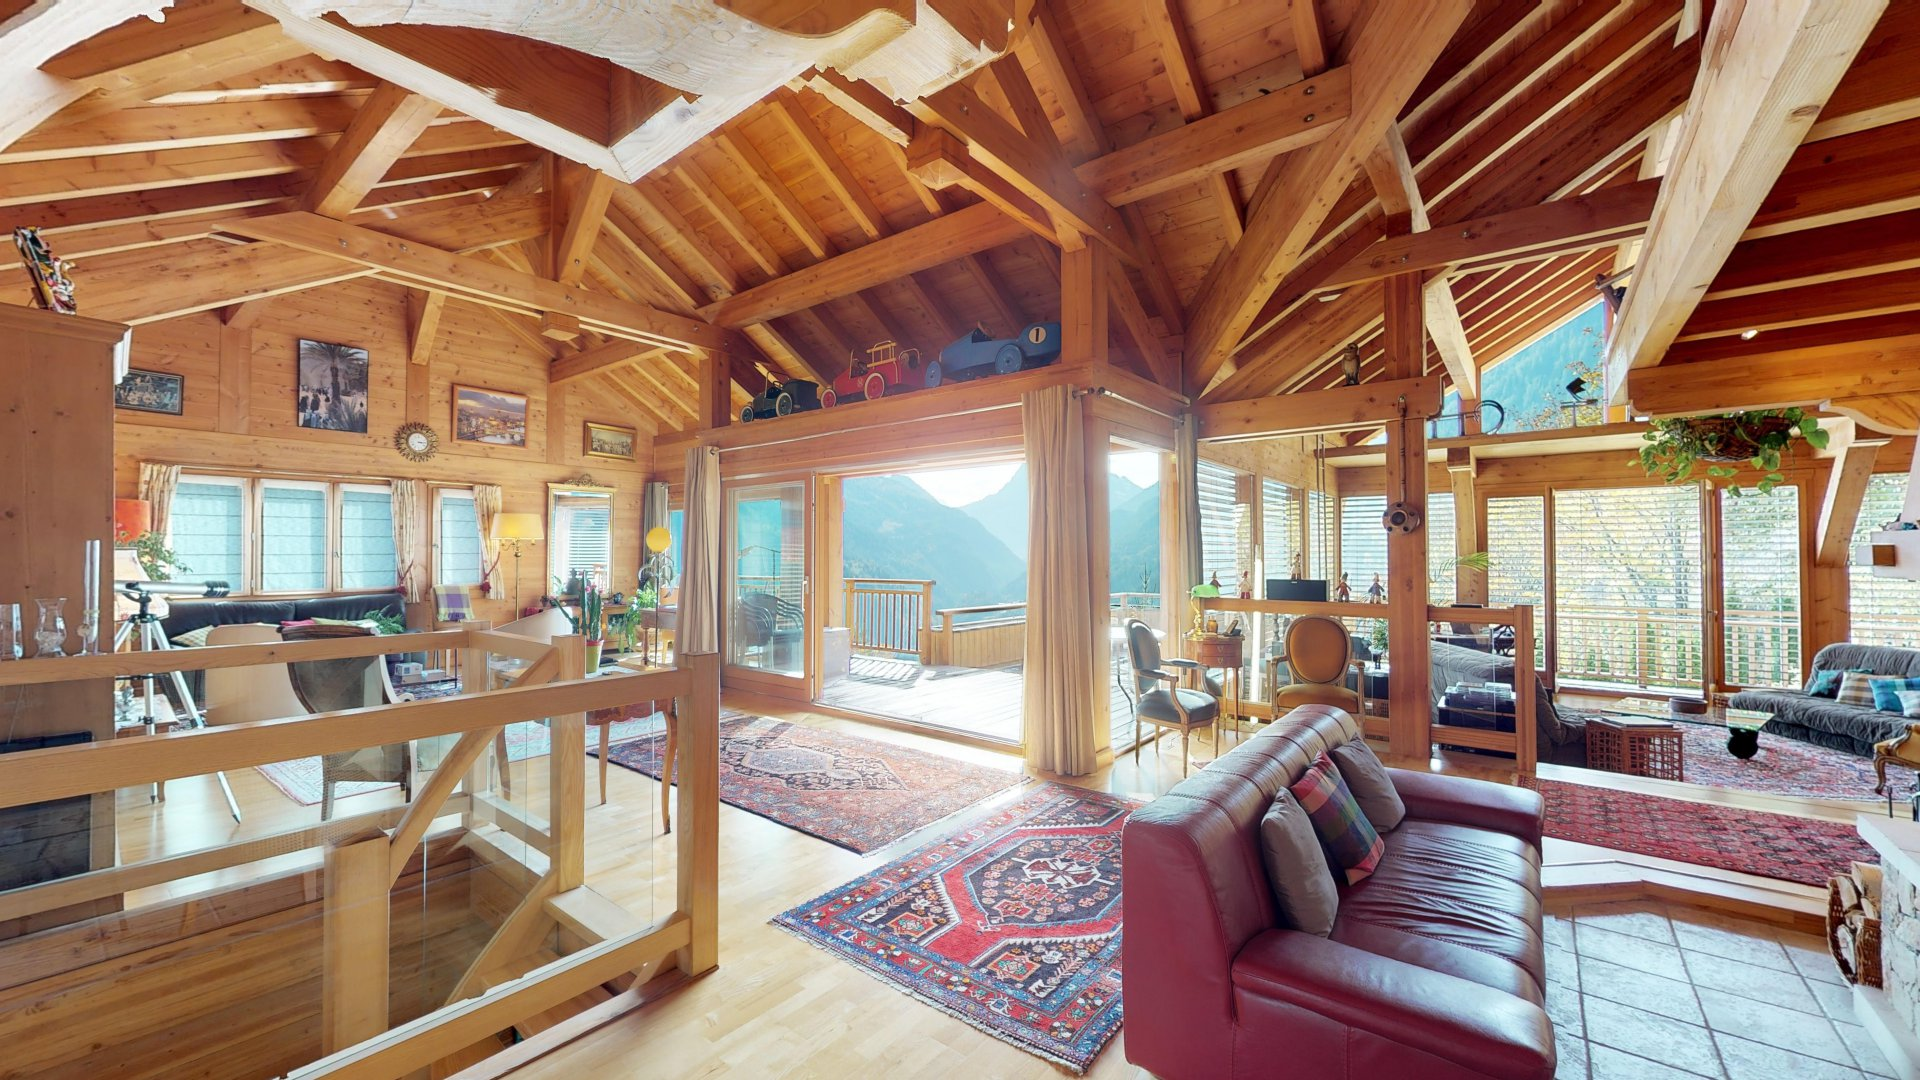 5 bedroom chalet with indoor pool, Finhaut, Valais